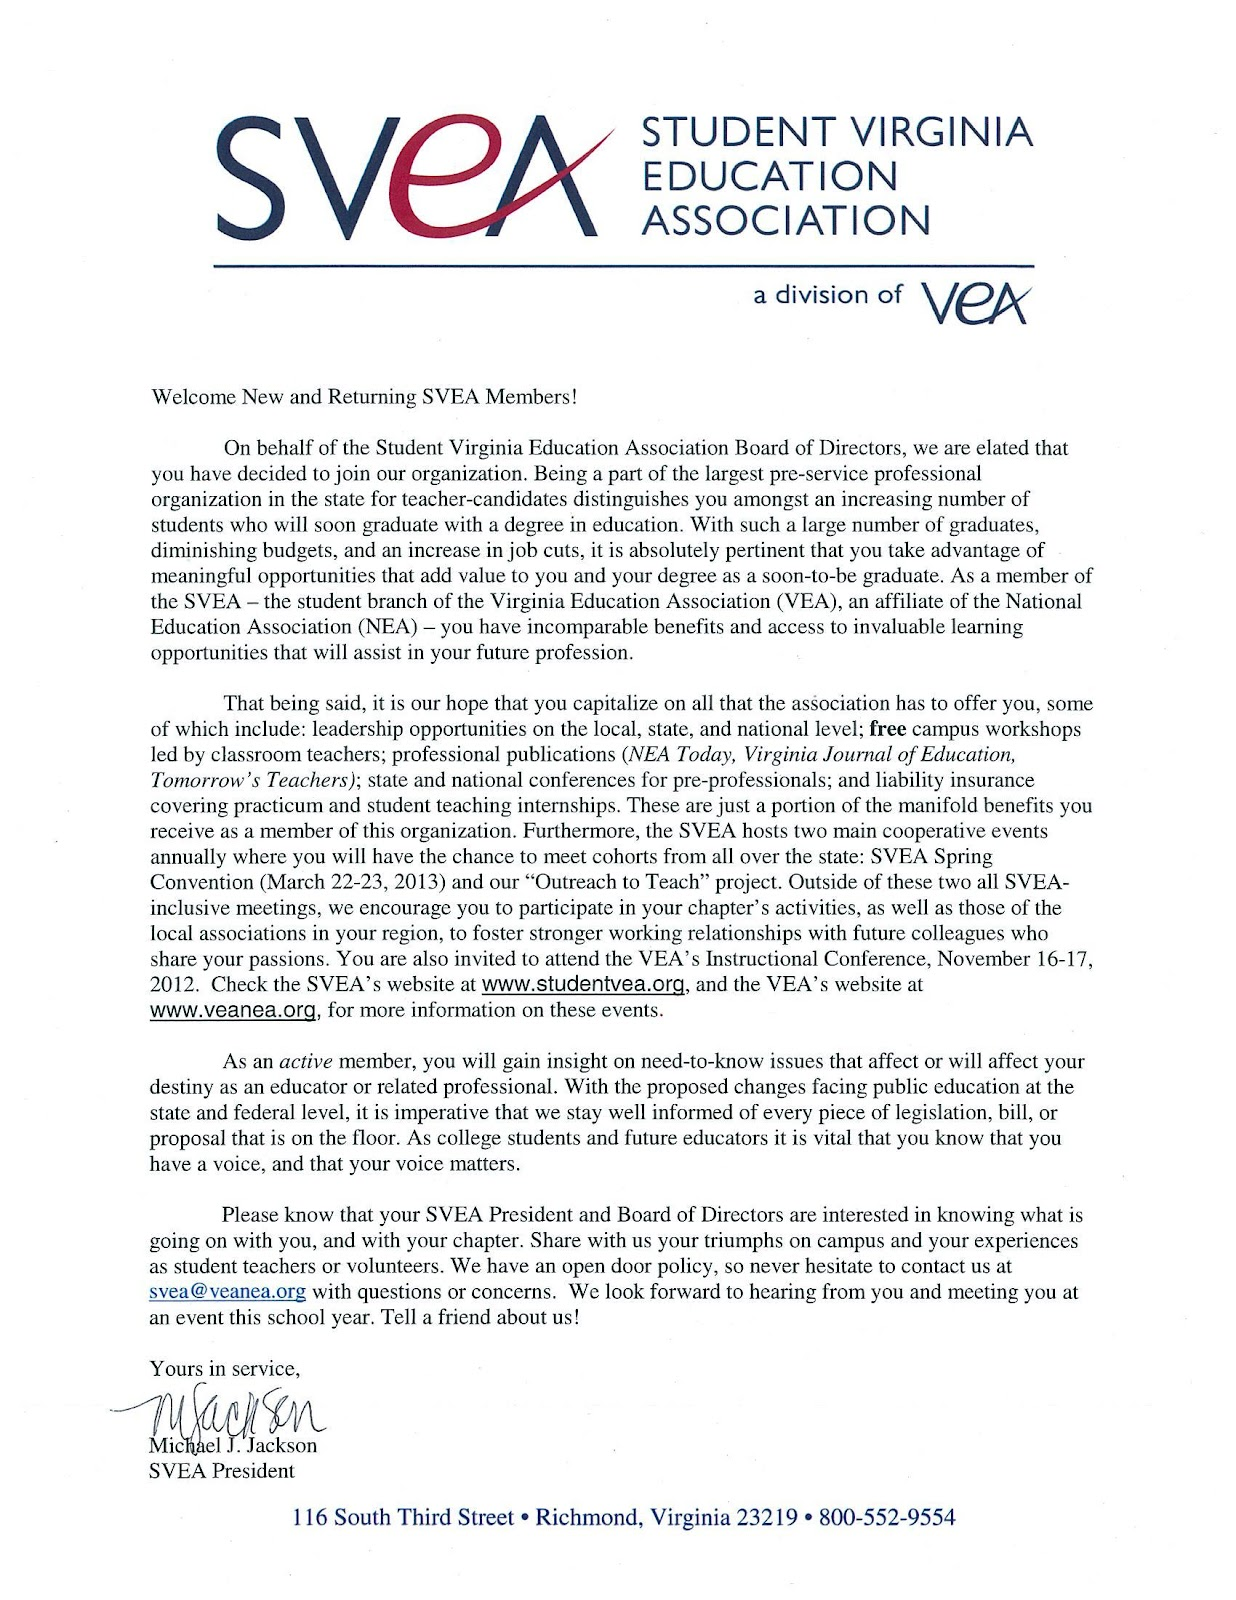 Student Virginia Education Association  Welcome Letter